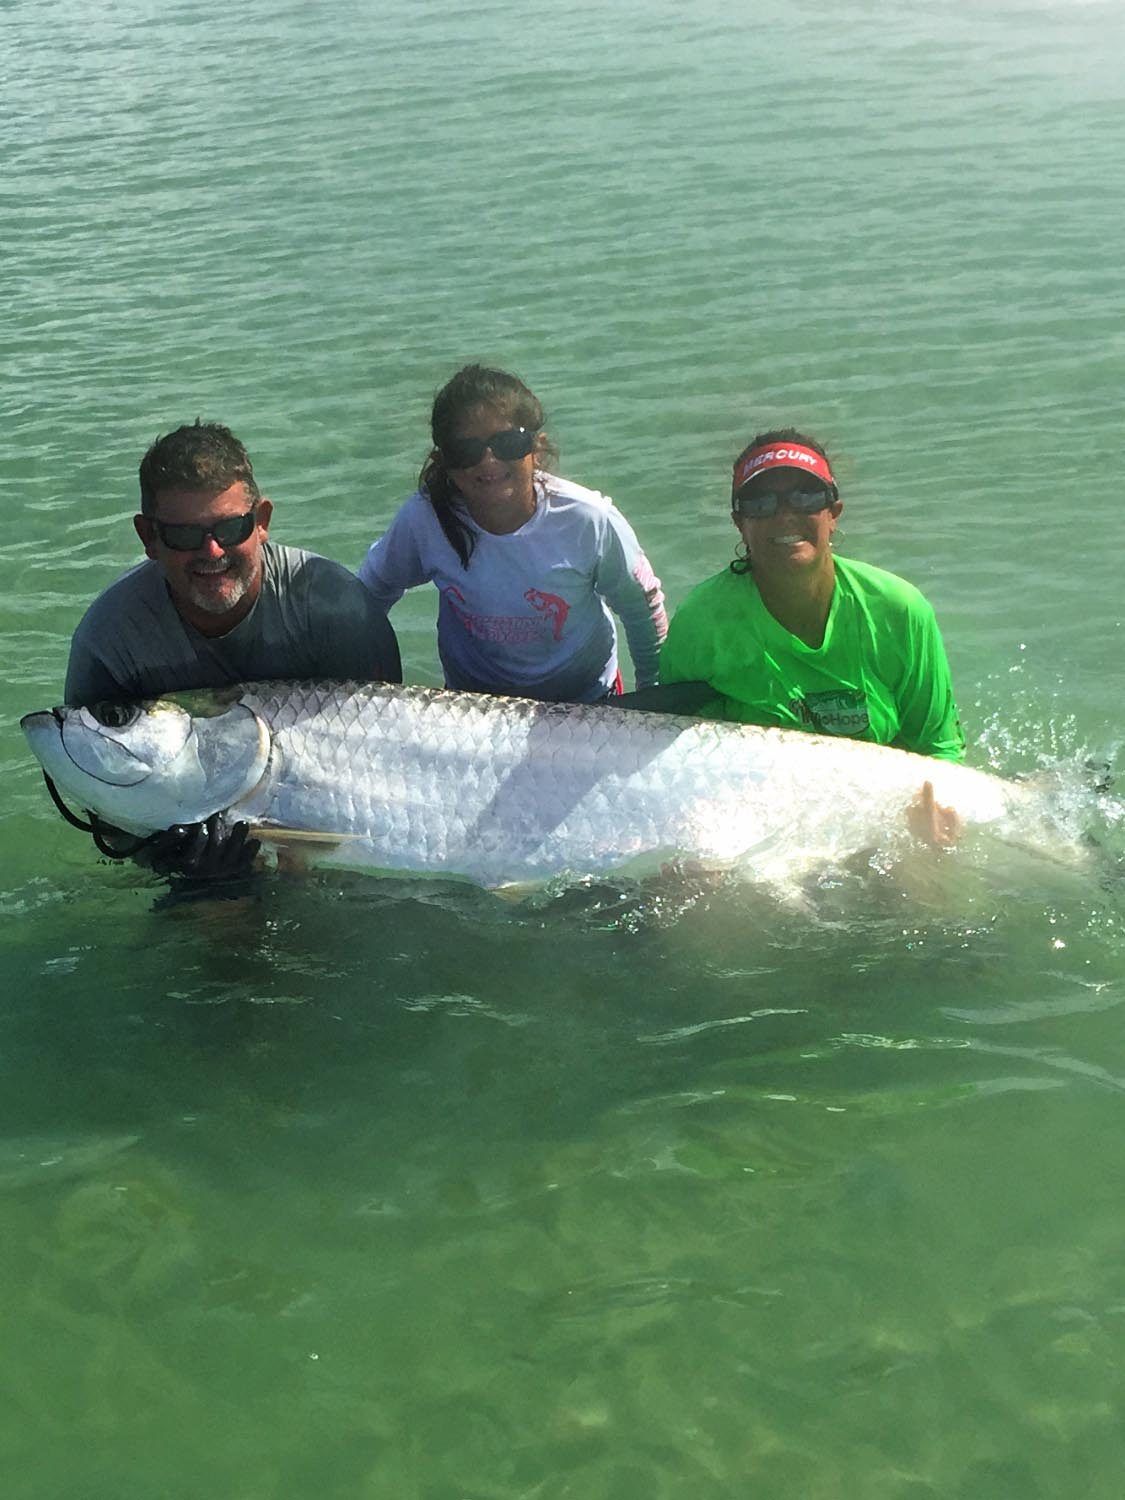 Tarpon fishing charters capt rick silkworth for Tarpon fishing charters